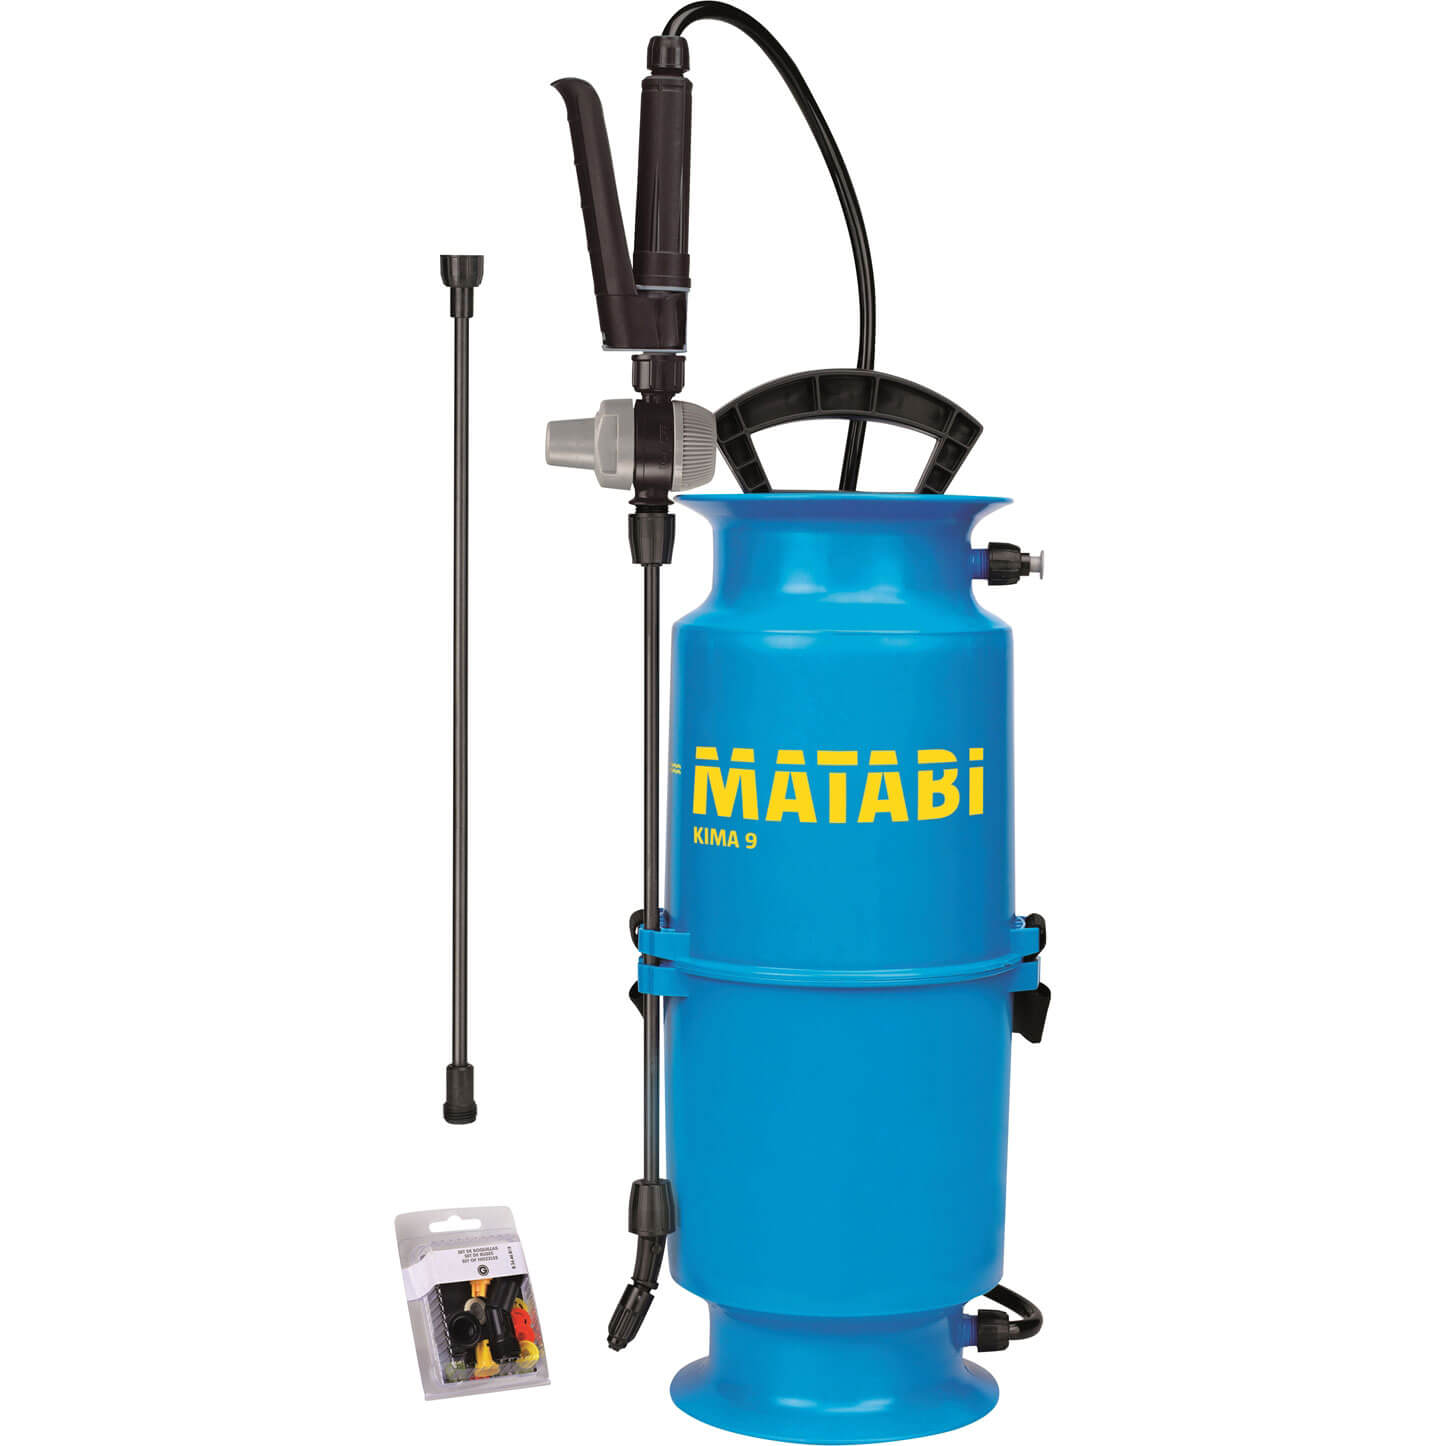 Image of Matabi Kima 6 Sprayer + Pressure Regulator 4l